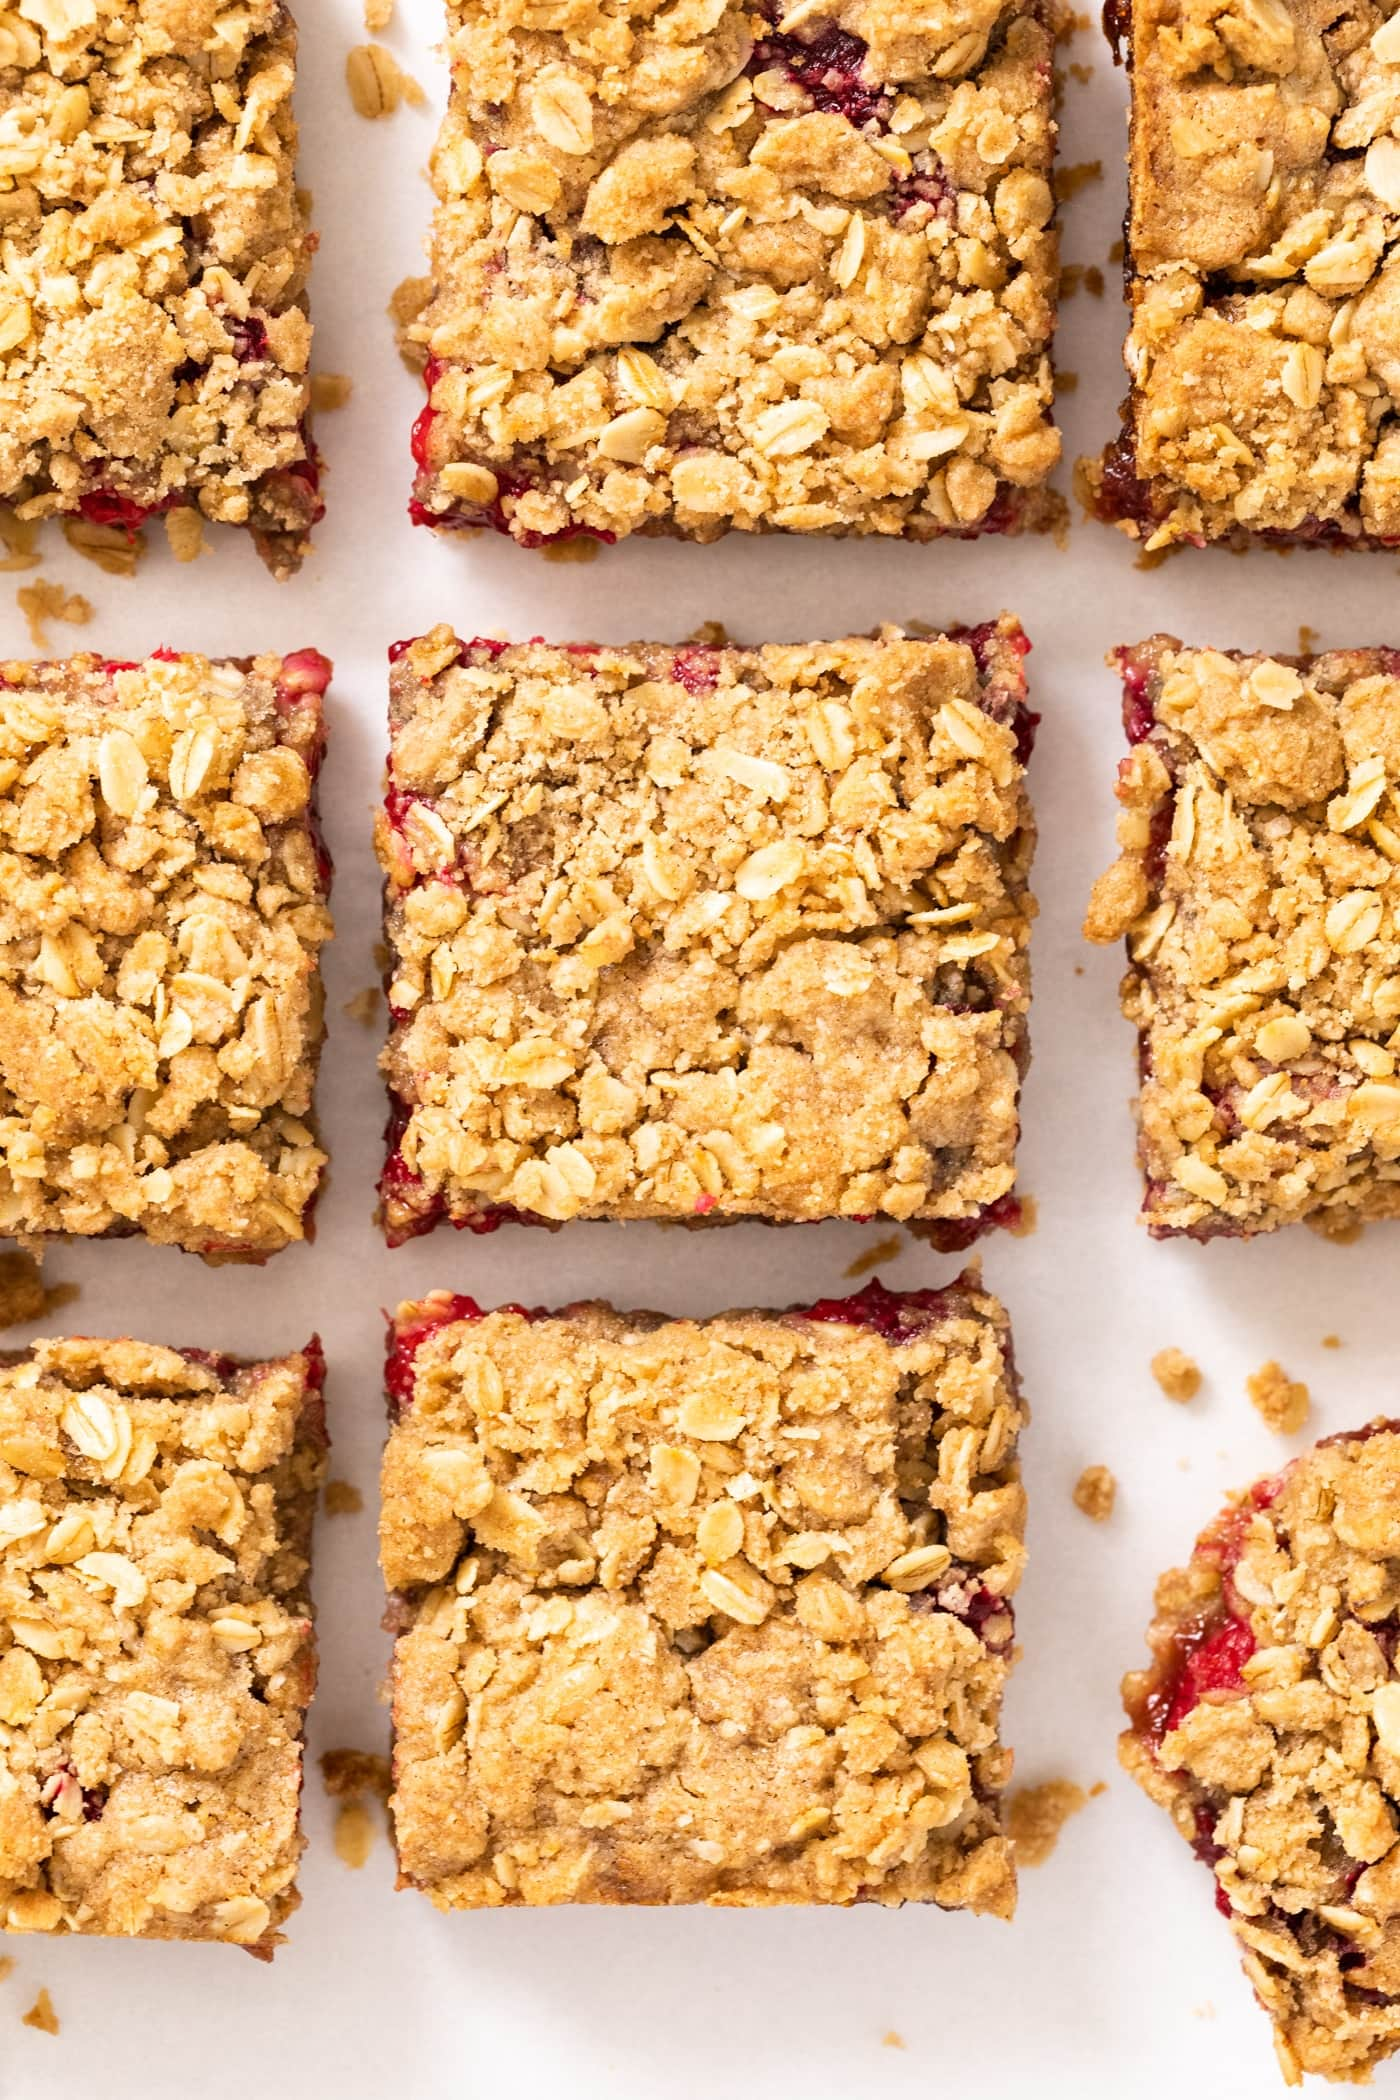 Top down view of square pieces of golden colored crumb bars with a red raspberry filling peeking out